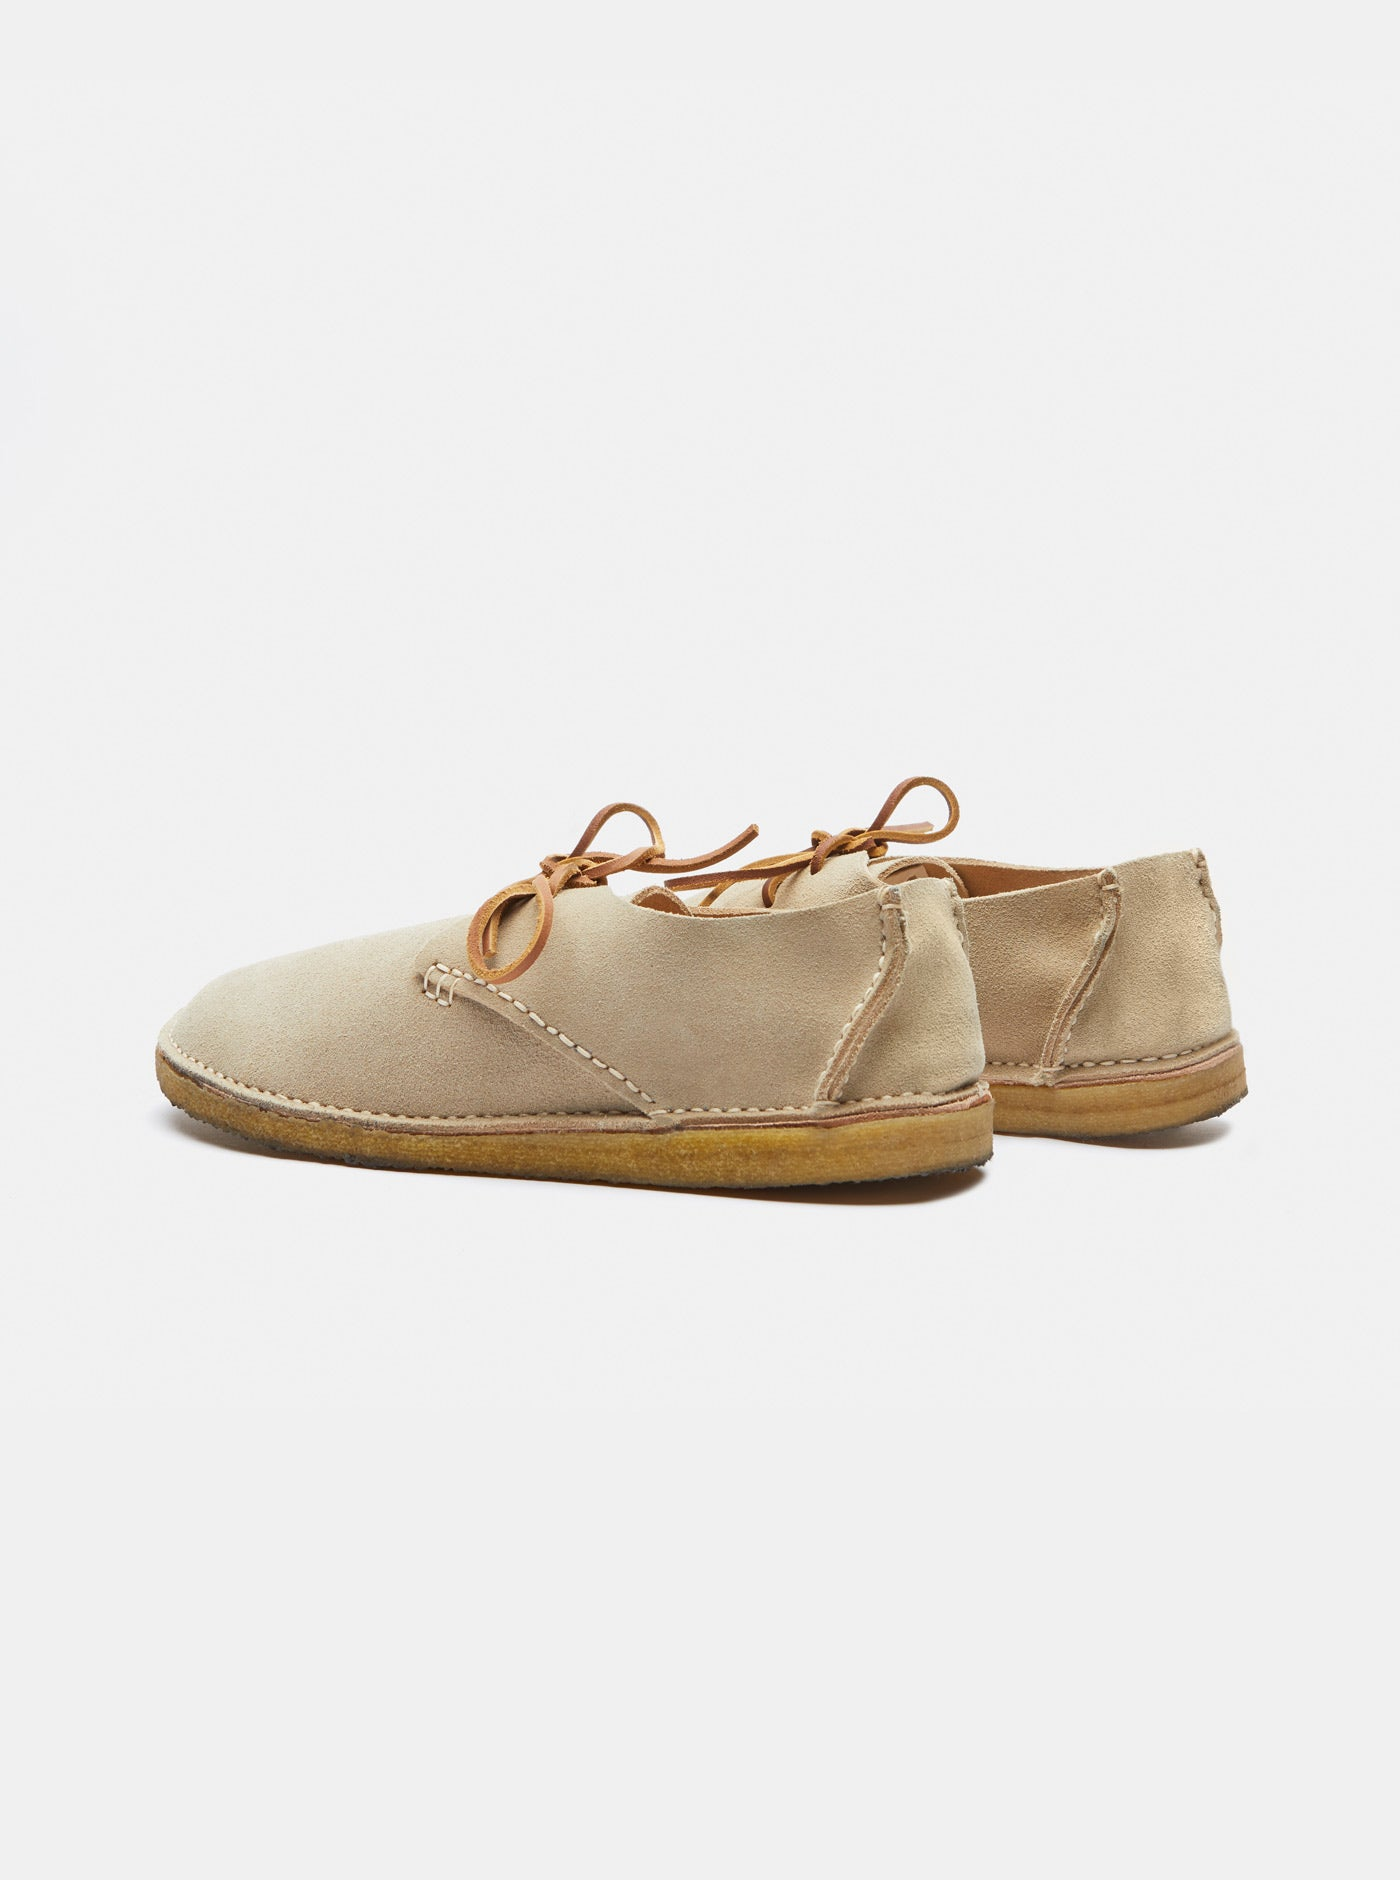 Caden Suede Lace-up Oatmeal